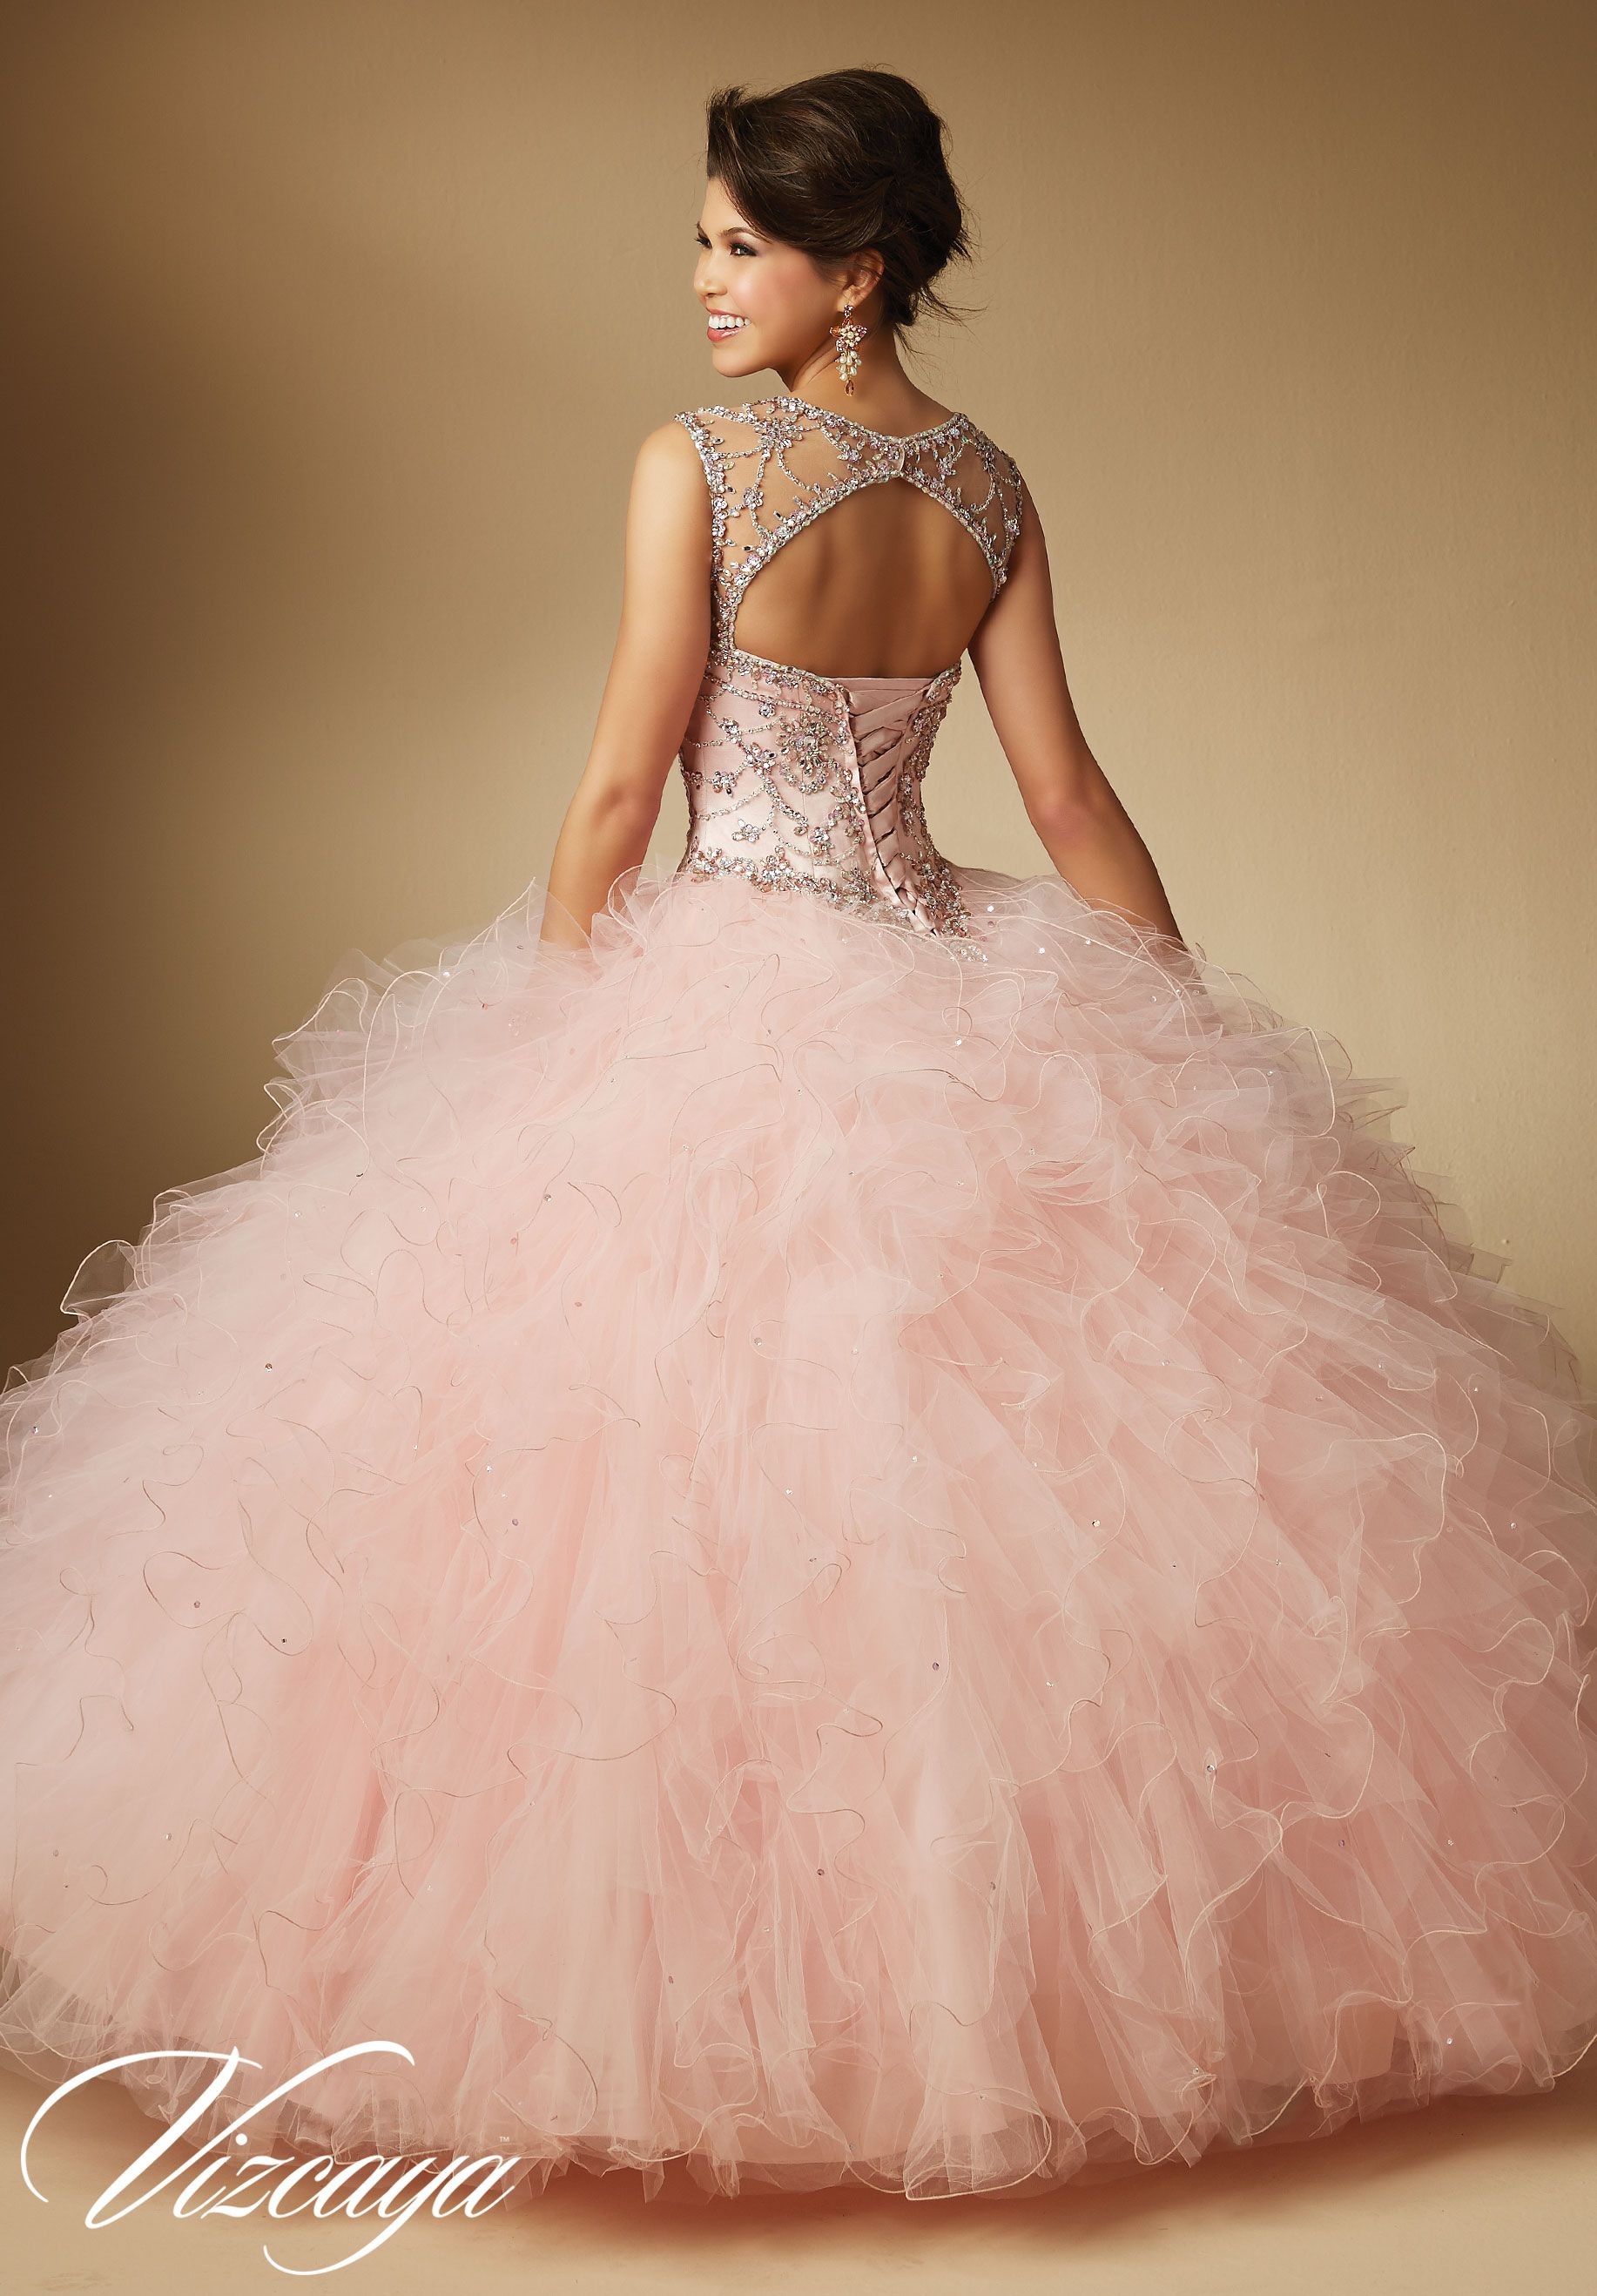 89041 Quinceanera Gowns Jeweled Beading on Ruffled Tulle | quince ...